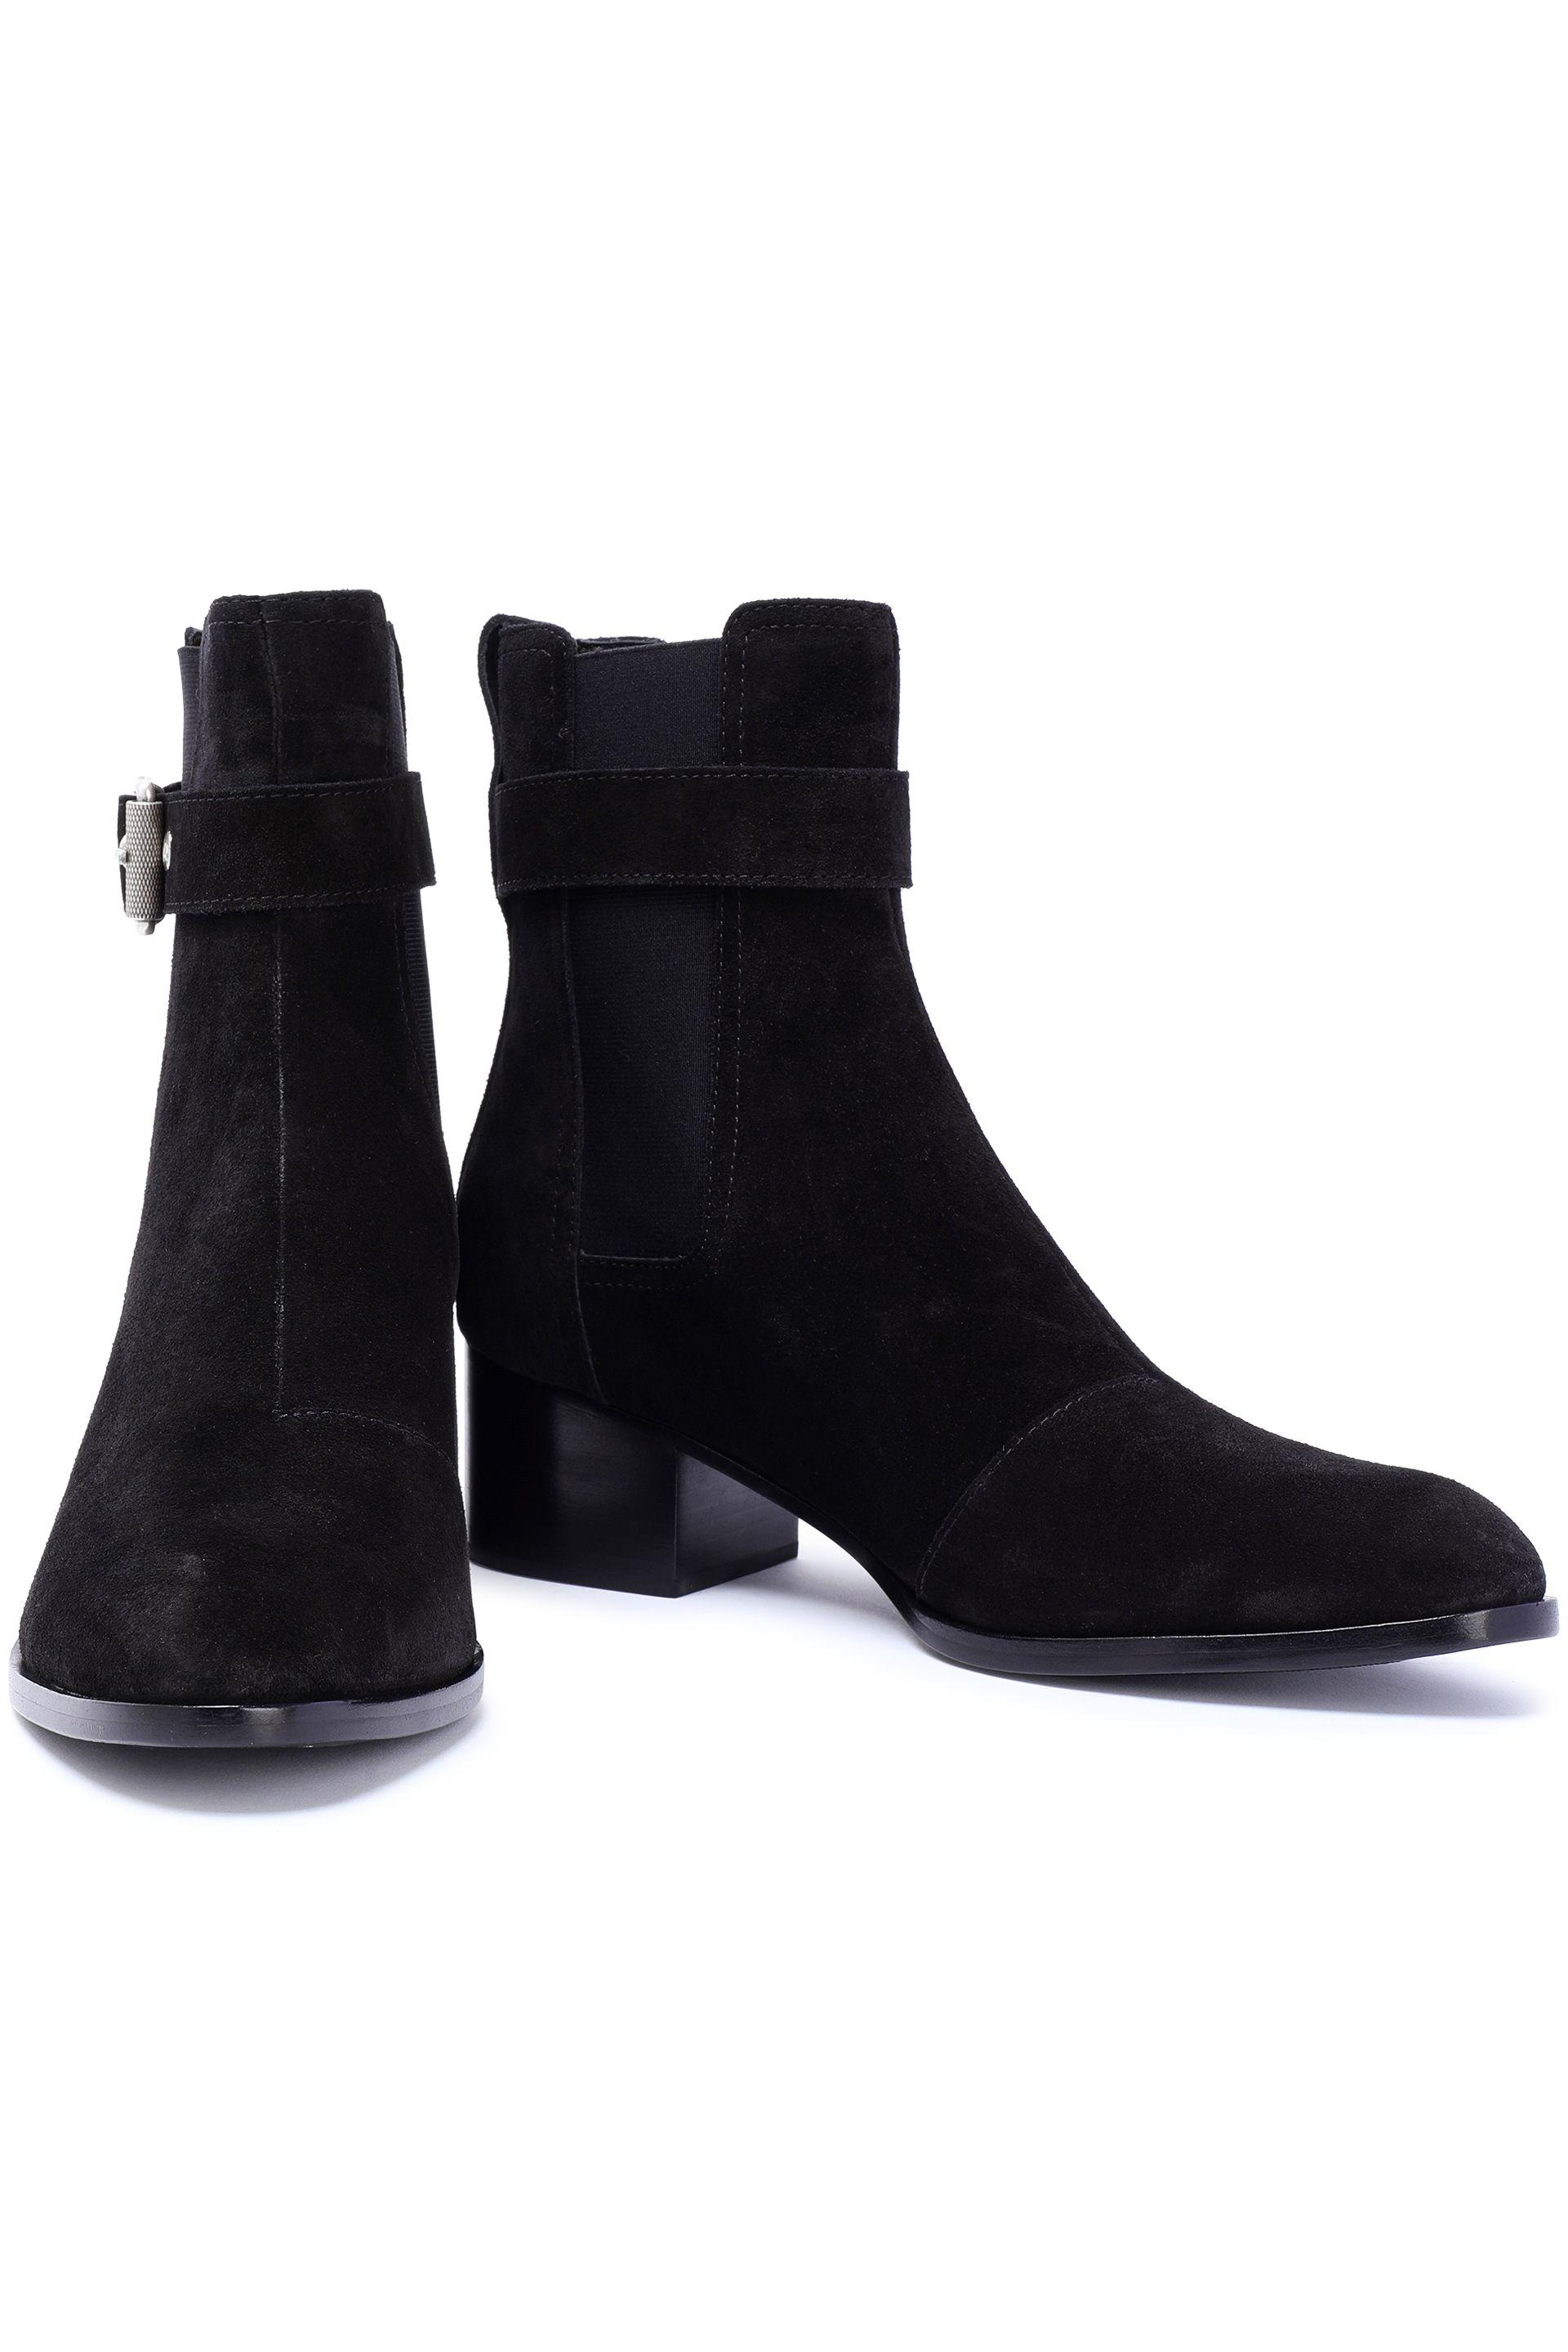 df68c8e9c0a15 Lyst - Rag & Bone Woman Wilson Buckled Suede Ankle Boots Black in Black